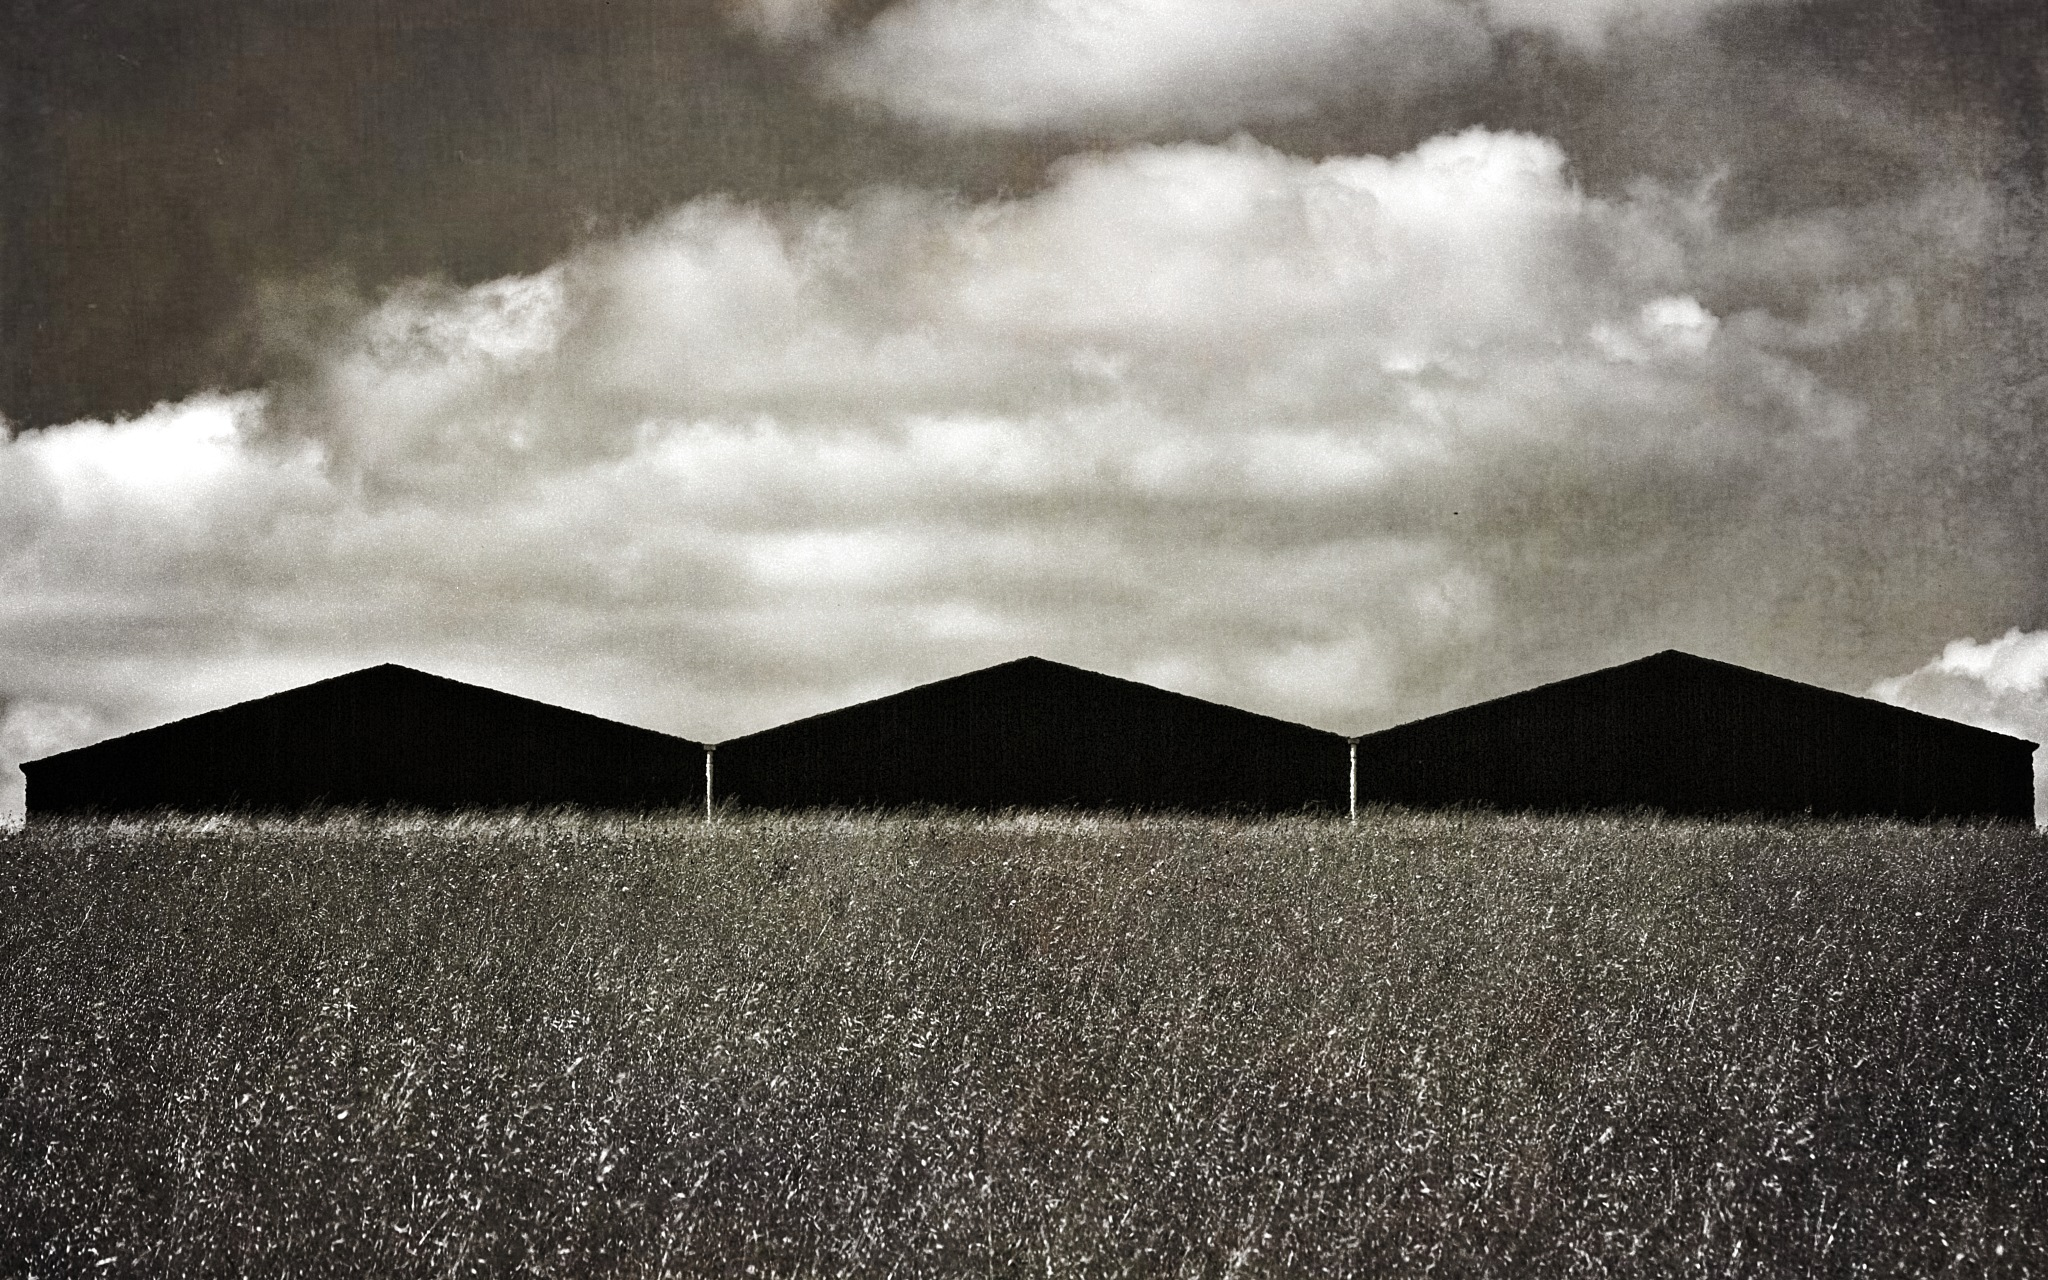 Black Sheds In Black & White by Keith Patrak